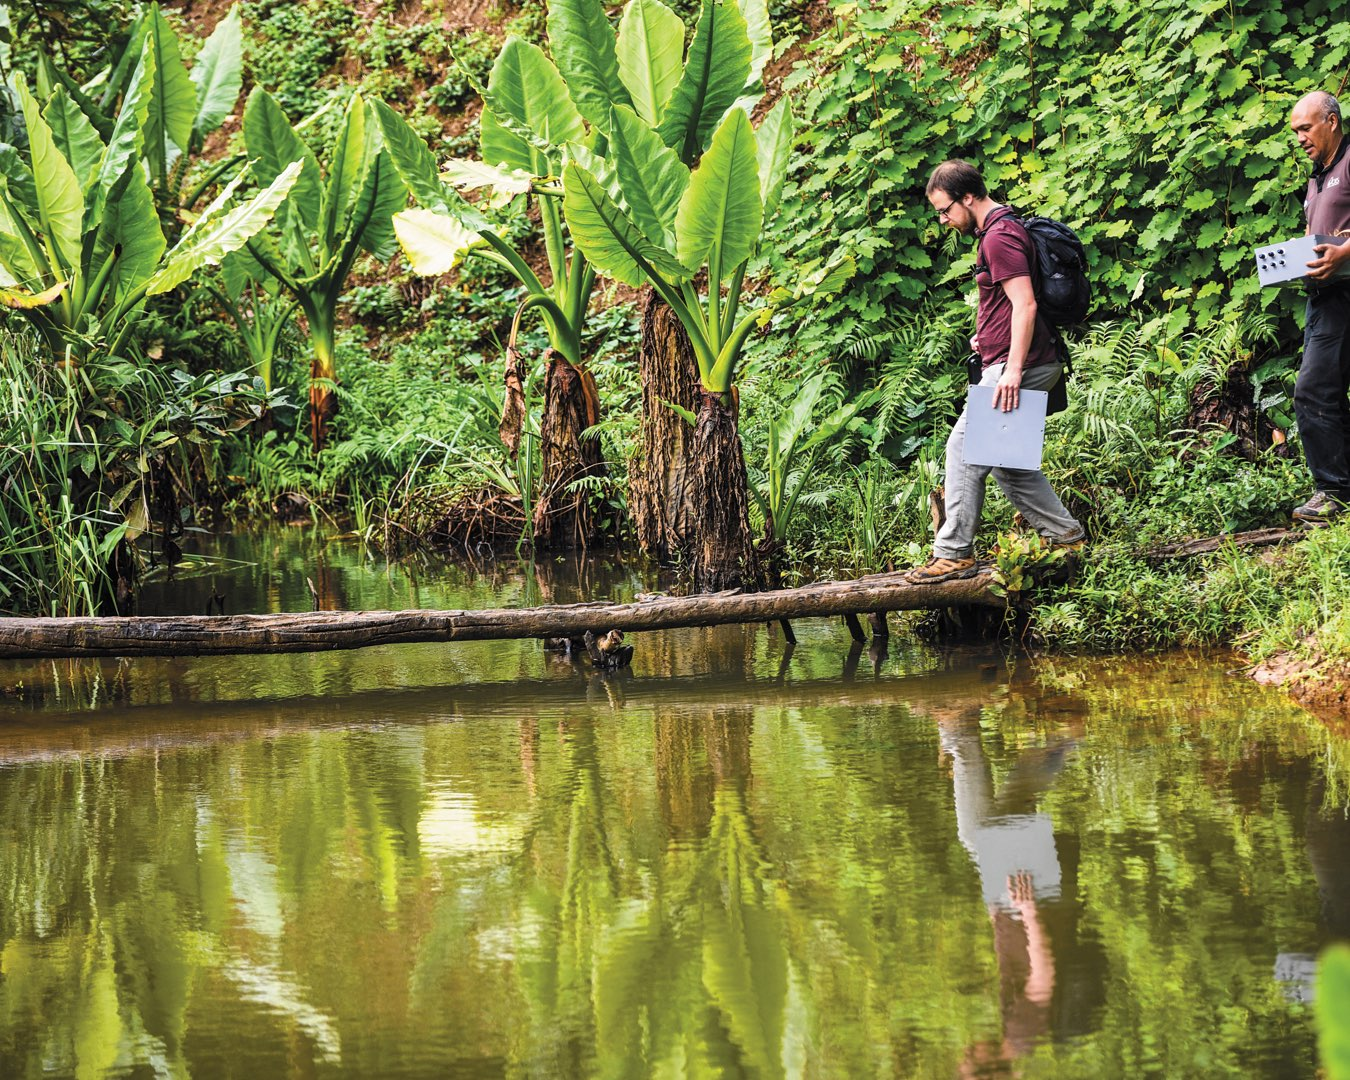 Surrounded by greenery and ferns, a male student and a CRS partner in Madagascar walk across a log over a body of water